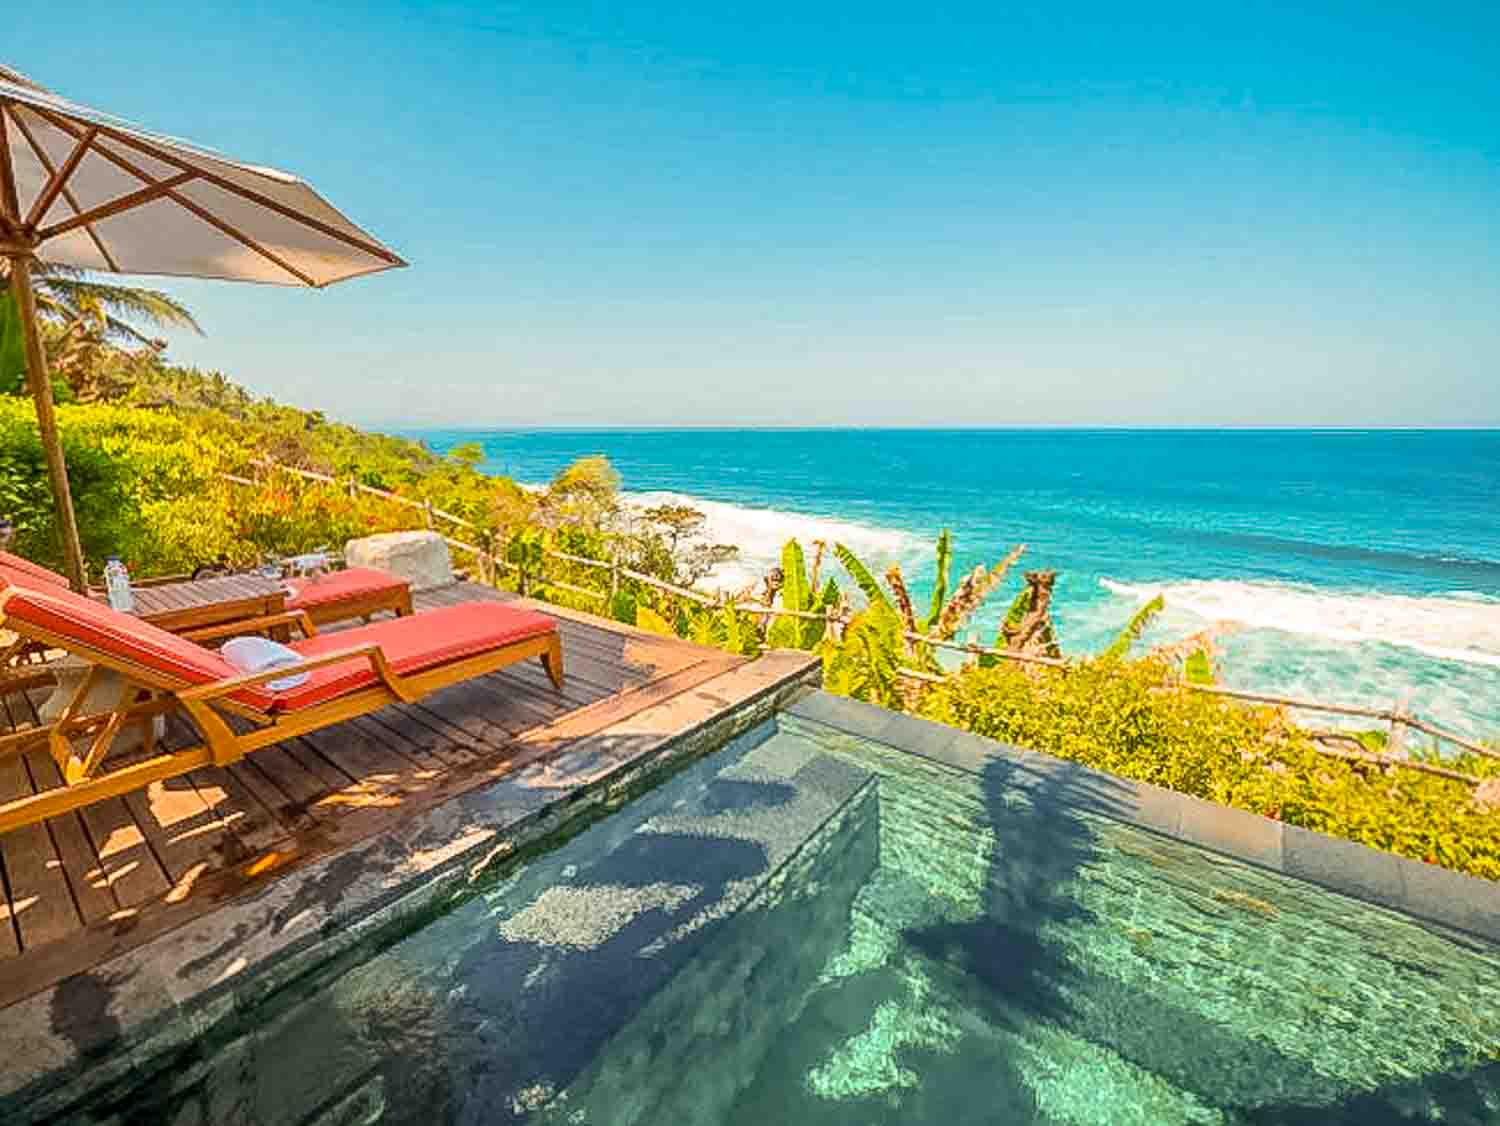 Nihi Sumba, best hotel in the world, is perfect for a romantic getaway